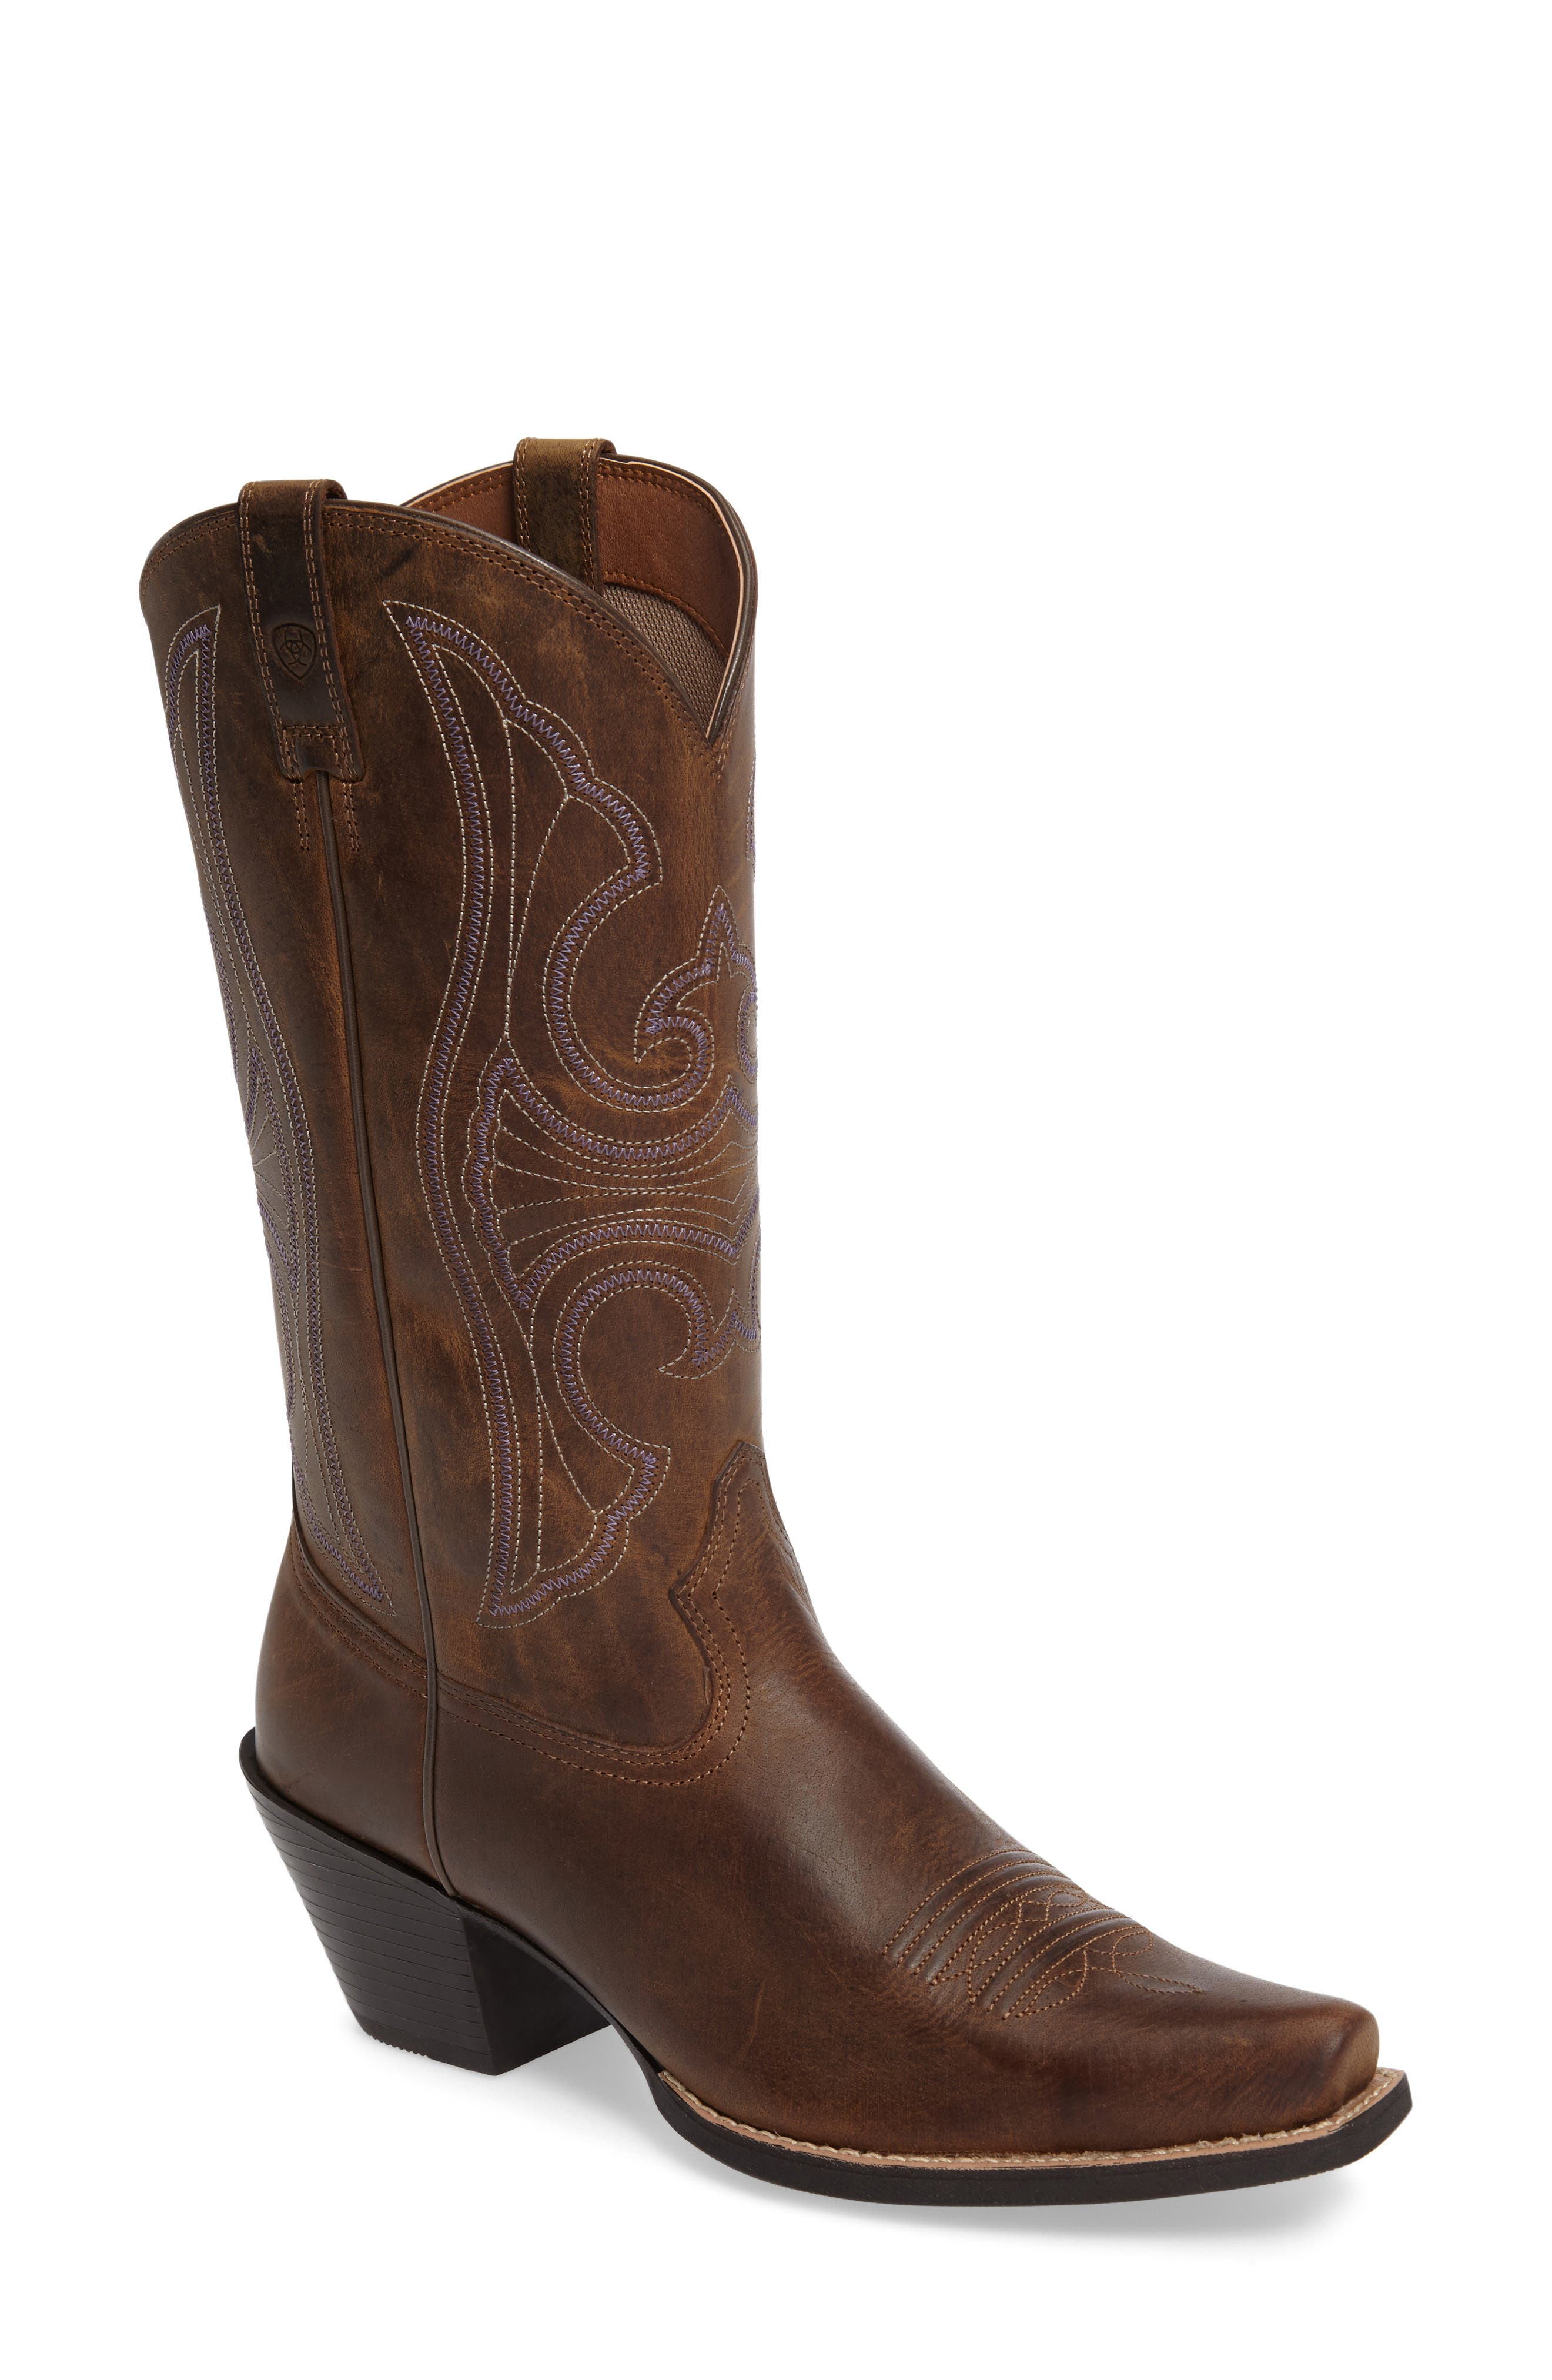 Alternate Image 1 Selected - Ariat Round Up D-Toe Western Boot (Women)